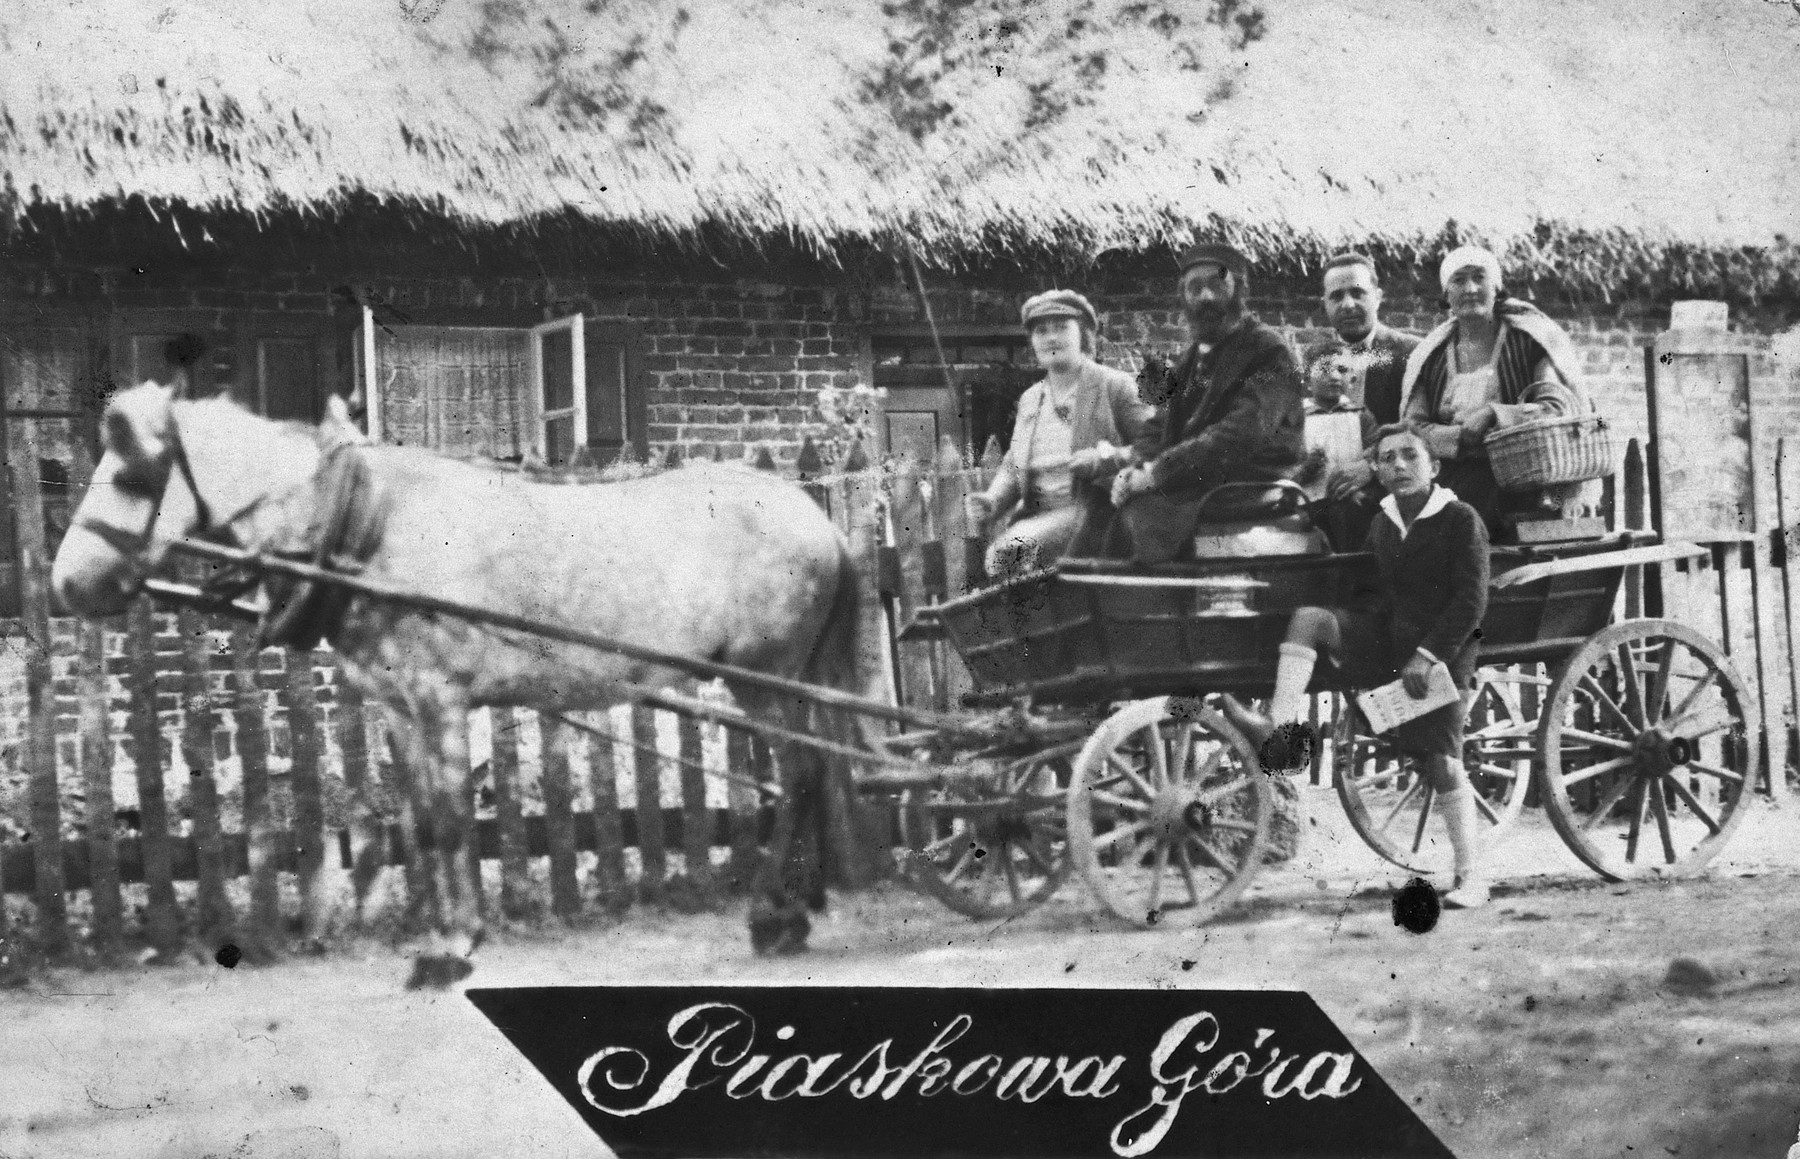 The Friedman family takes a horse and cart ride while on vacation in Piashkowa Gora.  Izaac is pictured standing alongside the cart.